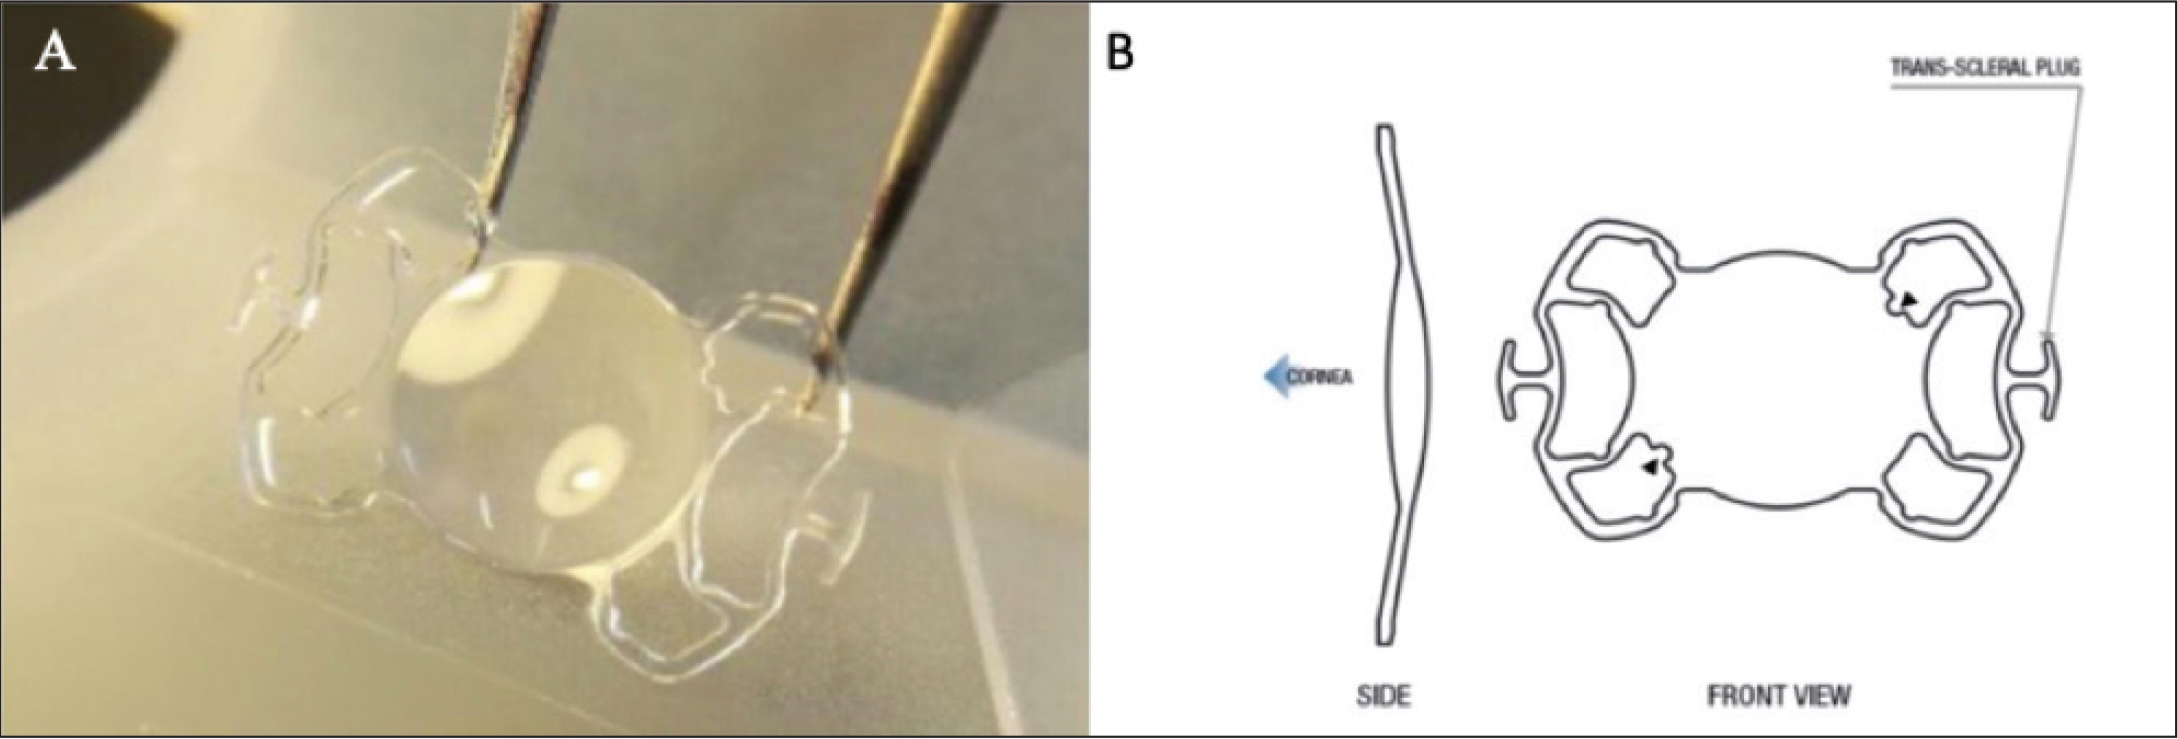 Photograph (A) and diagram (B) showing the structure of the new Carlevale sutureless scleral fixation intraocular lens (SSF-IOL; Soleko). Arrow points to the two notches on the optic plate (upper right and lower left).